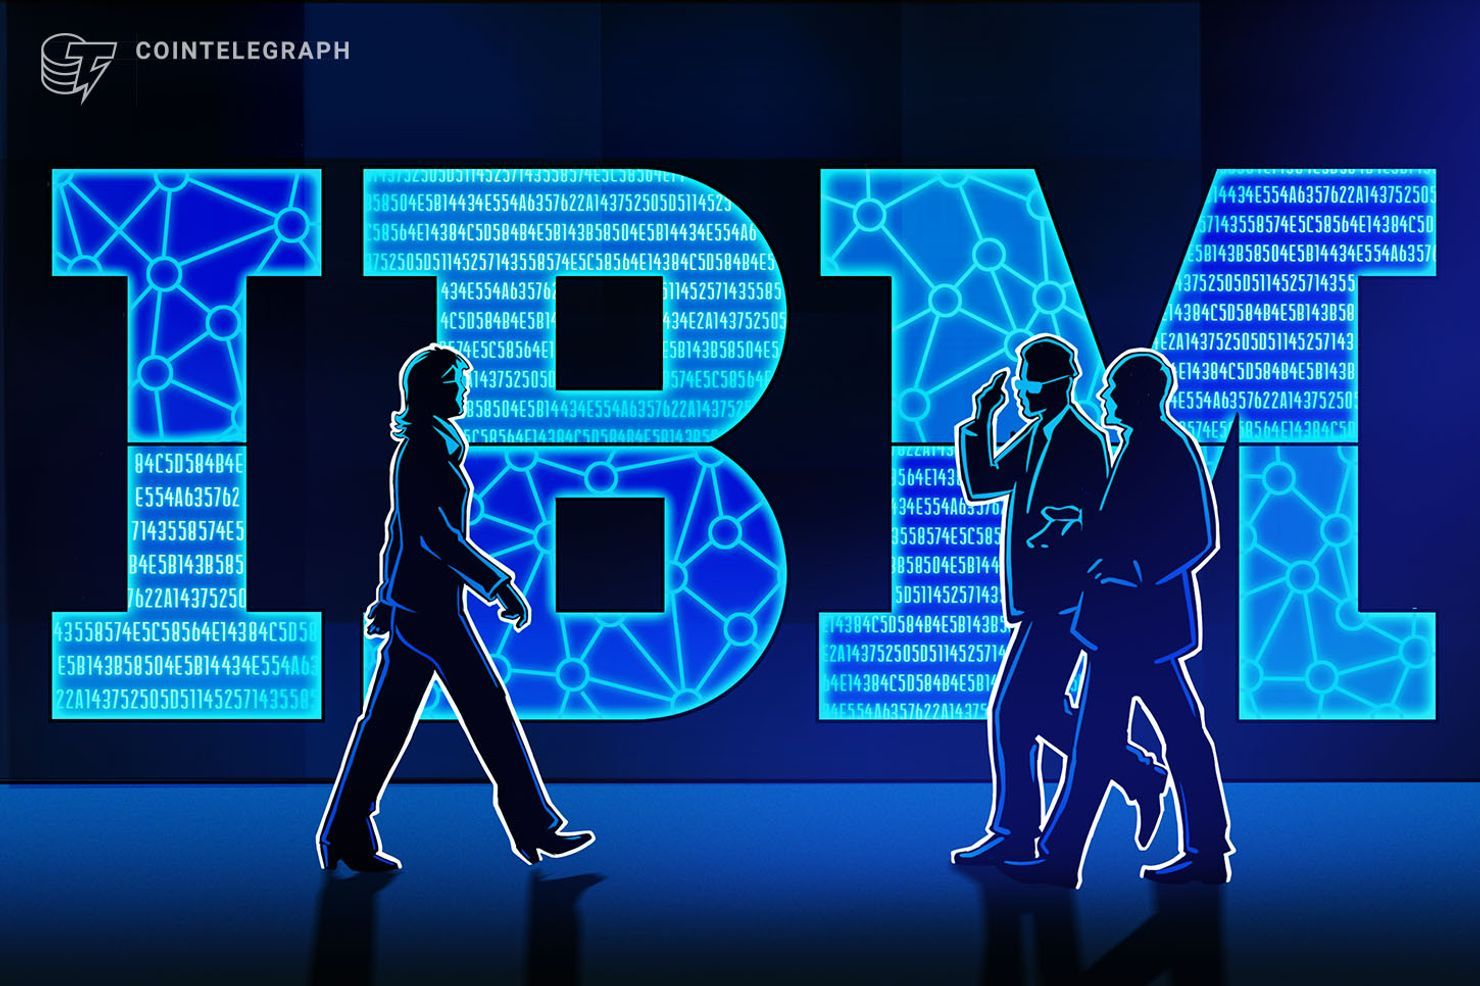 IBM's Blockchain Patents From FoodTracking and Shipping